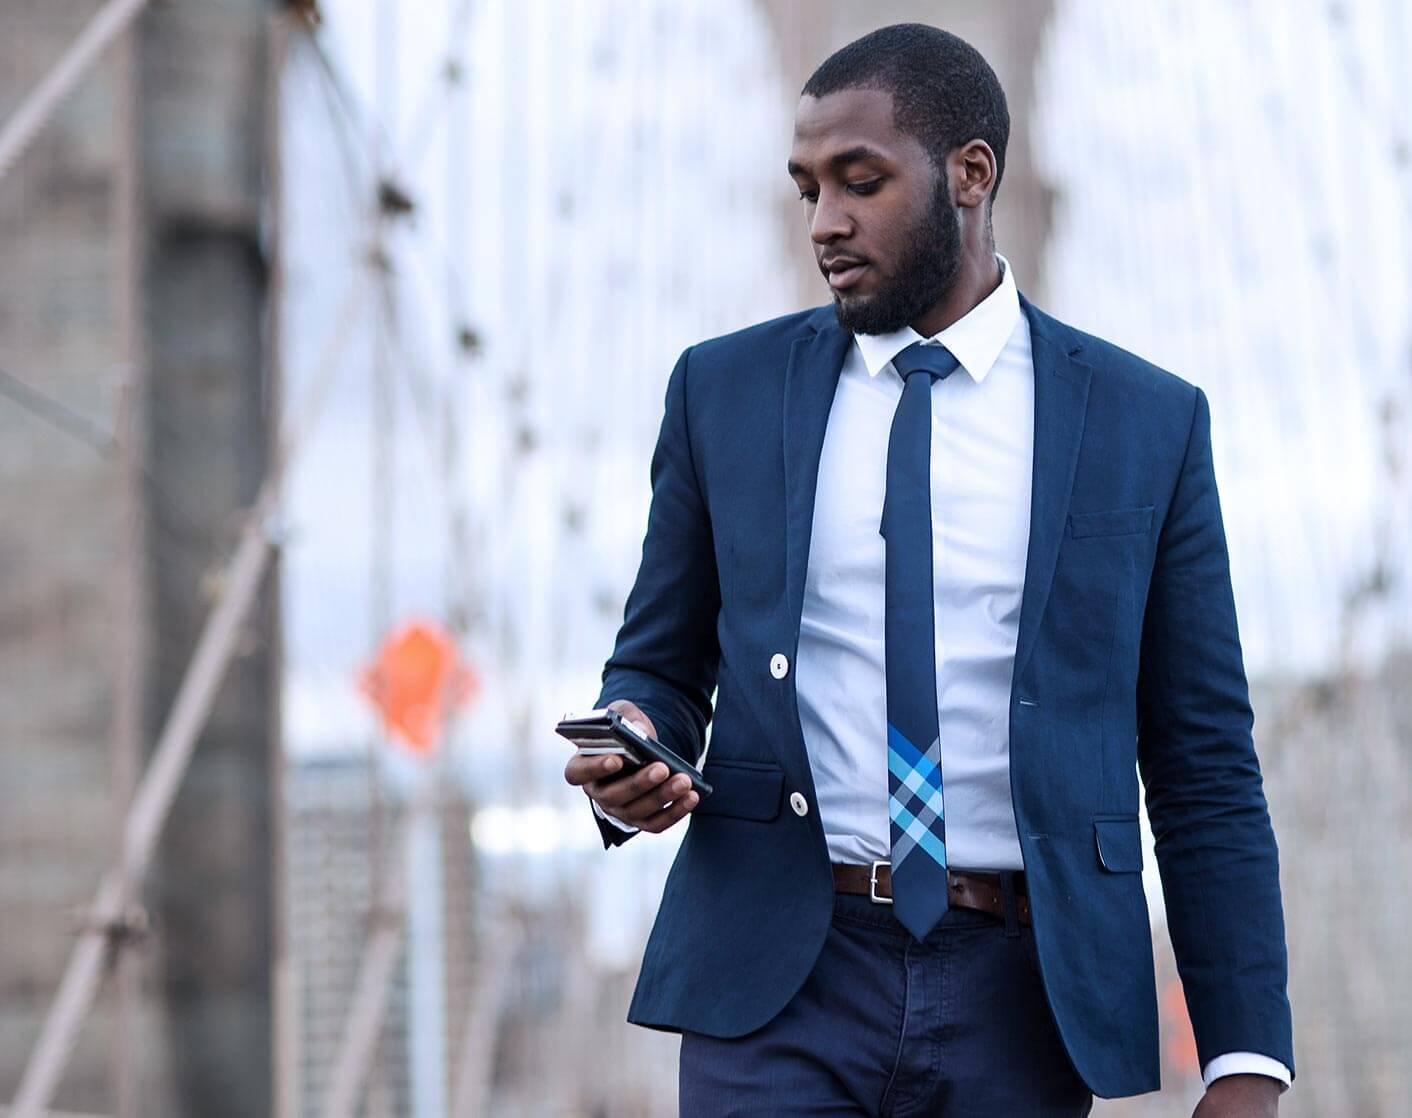 Black man in suit walking outside looking down at his mobile phone while he walks